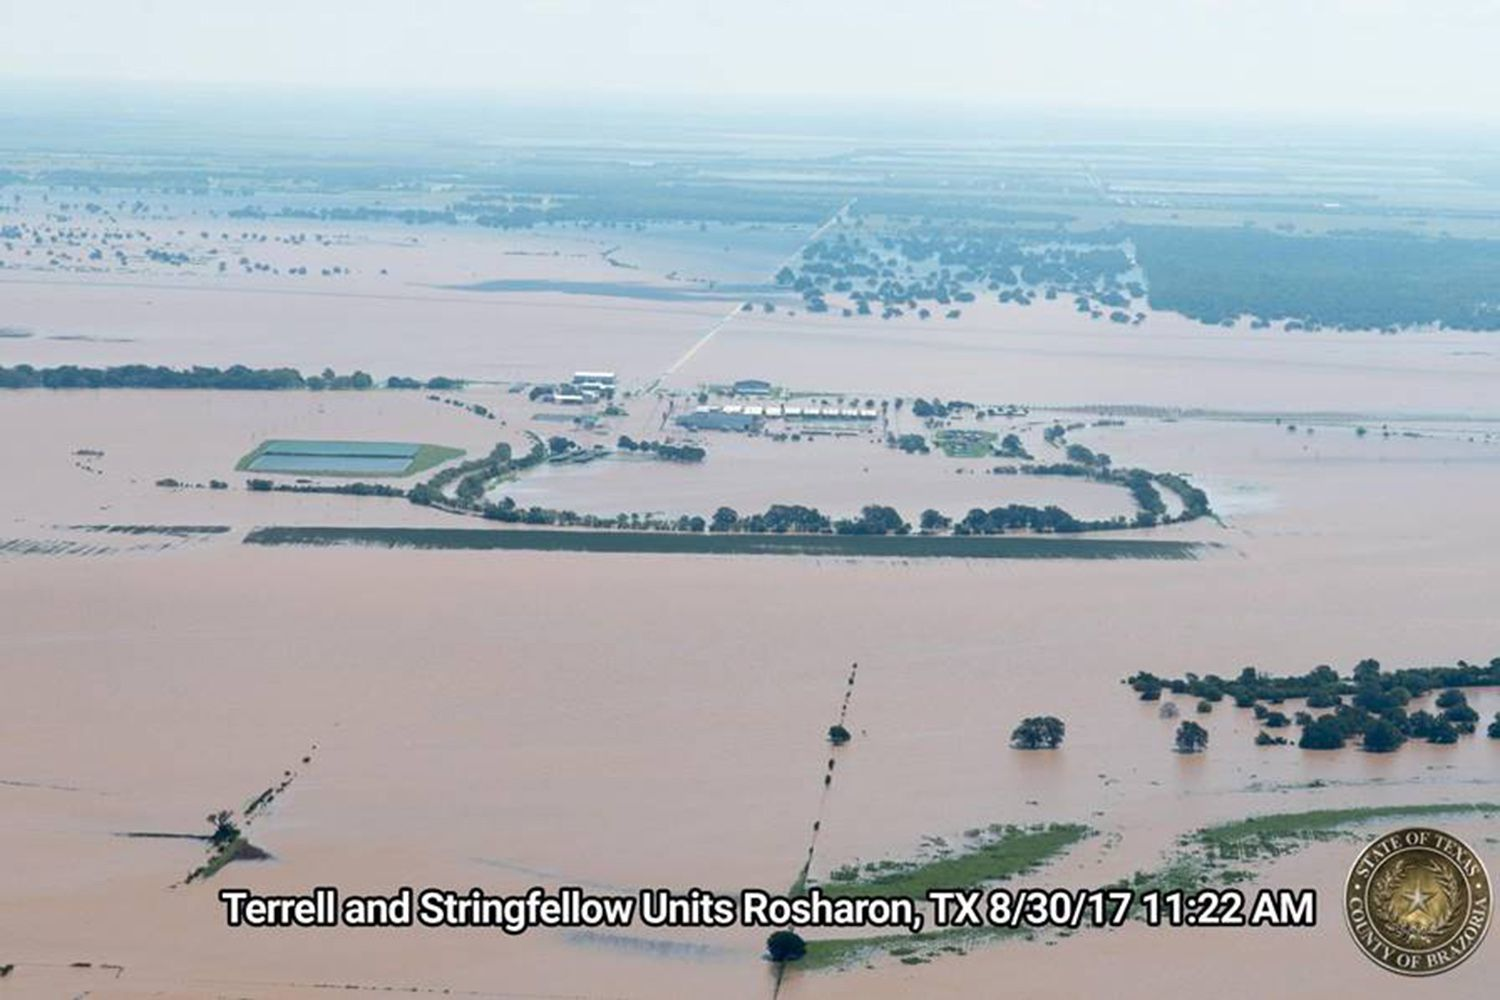 Here's a look at an aerial view of flooding from Hurricane Harvey at the Texas Department of Criminal Justice's Terrell and Stringfellow units in Brazoria County on Aug. 30, 2017.